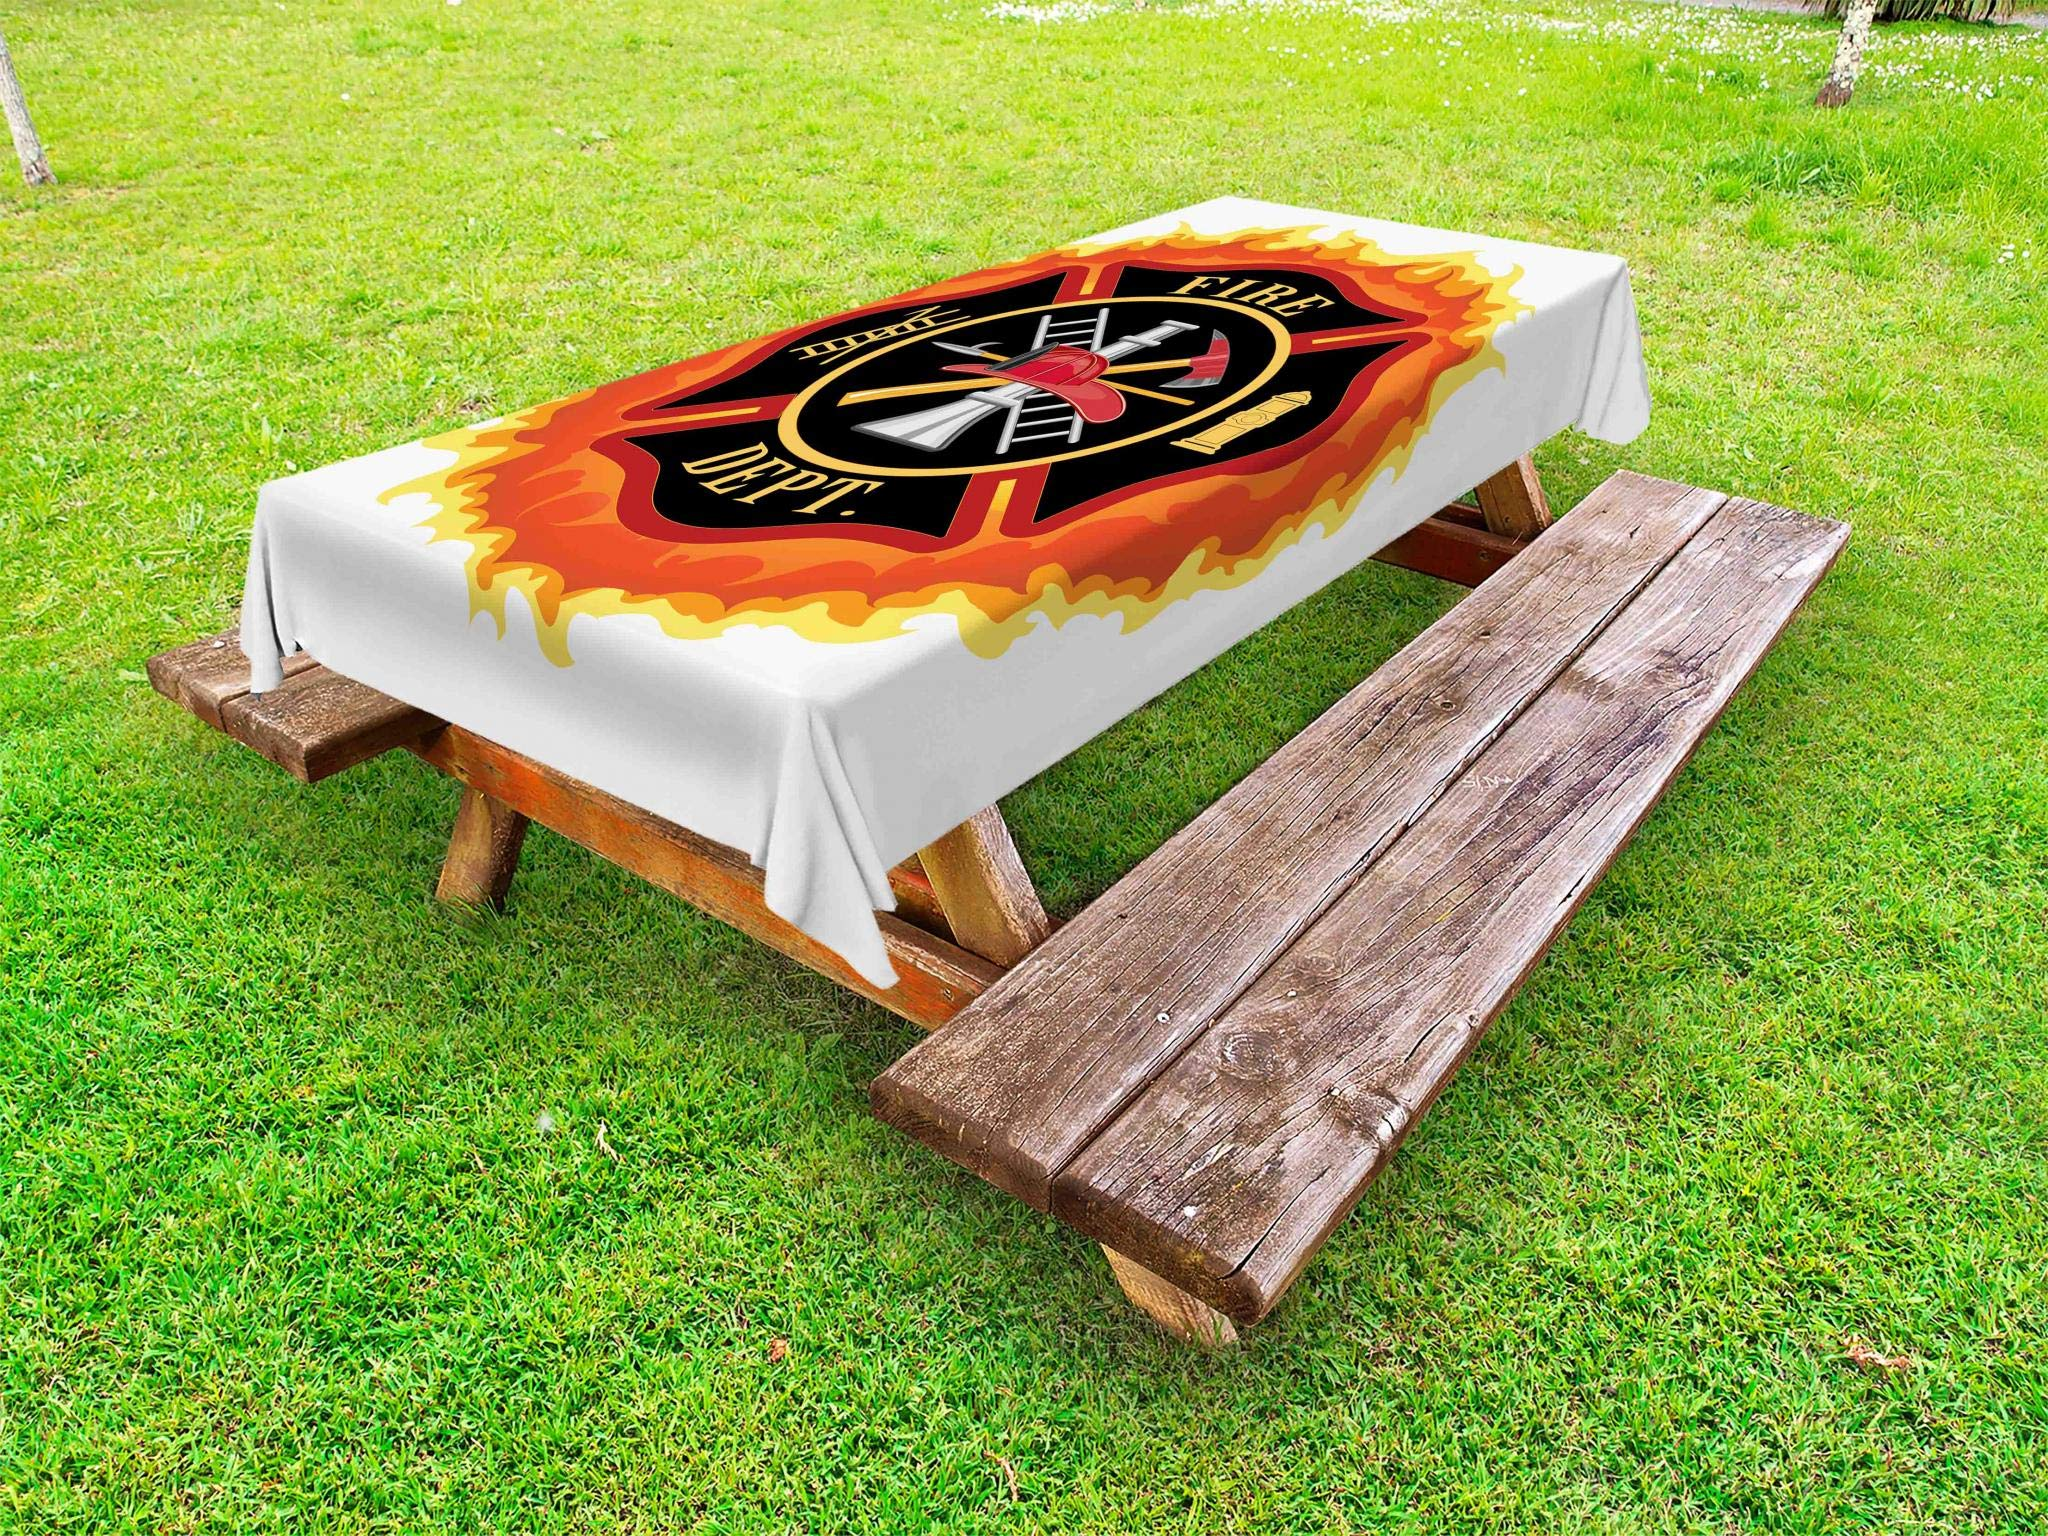 Lunarable Fireman Outdoor Tablecloth, Fire Department with Ladder Public Service Essential Tools of Firefighters, Decorative Washable Picnic Table Cloth, 58'' X 120'', Soft Orange